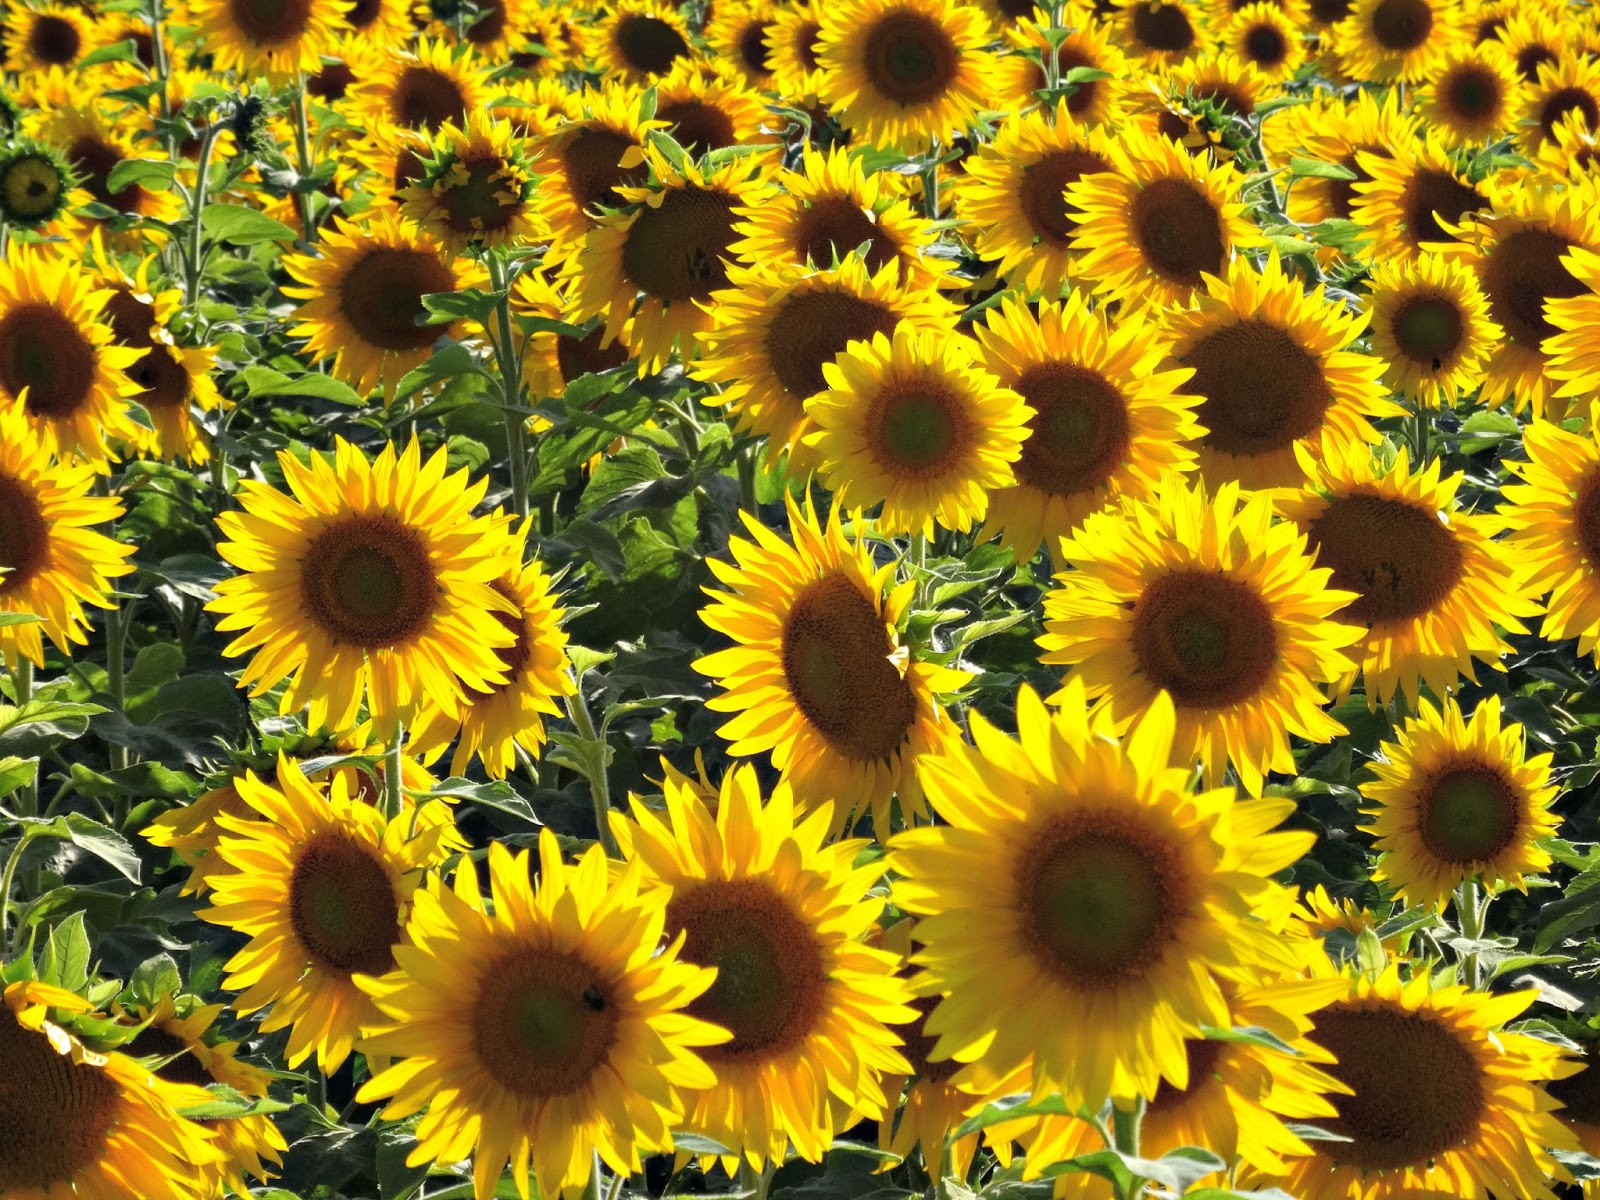 sunflowers in Germany